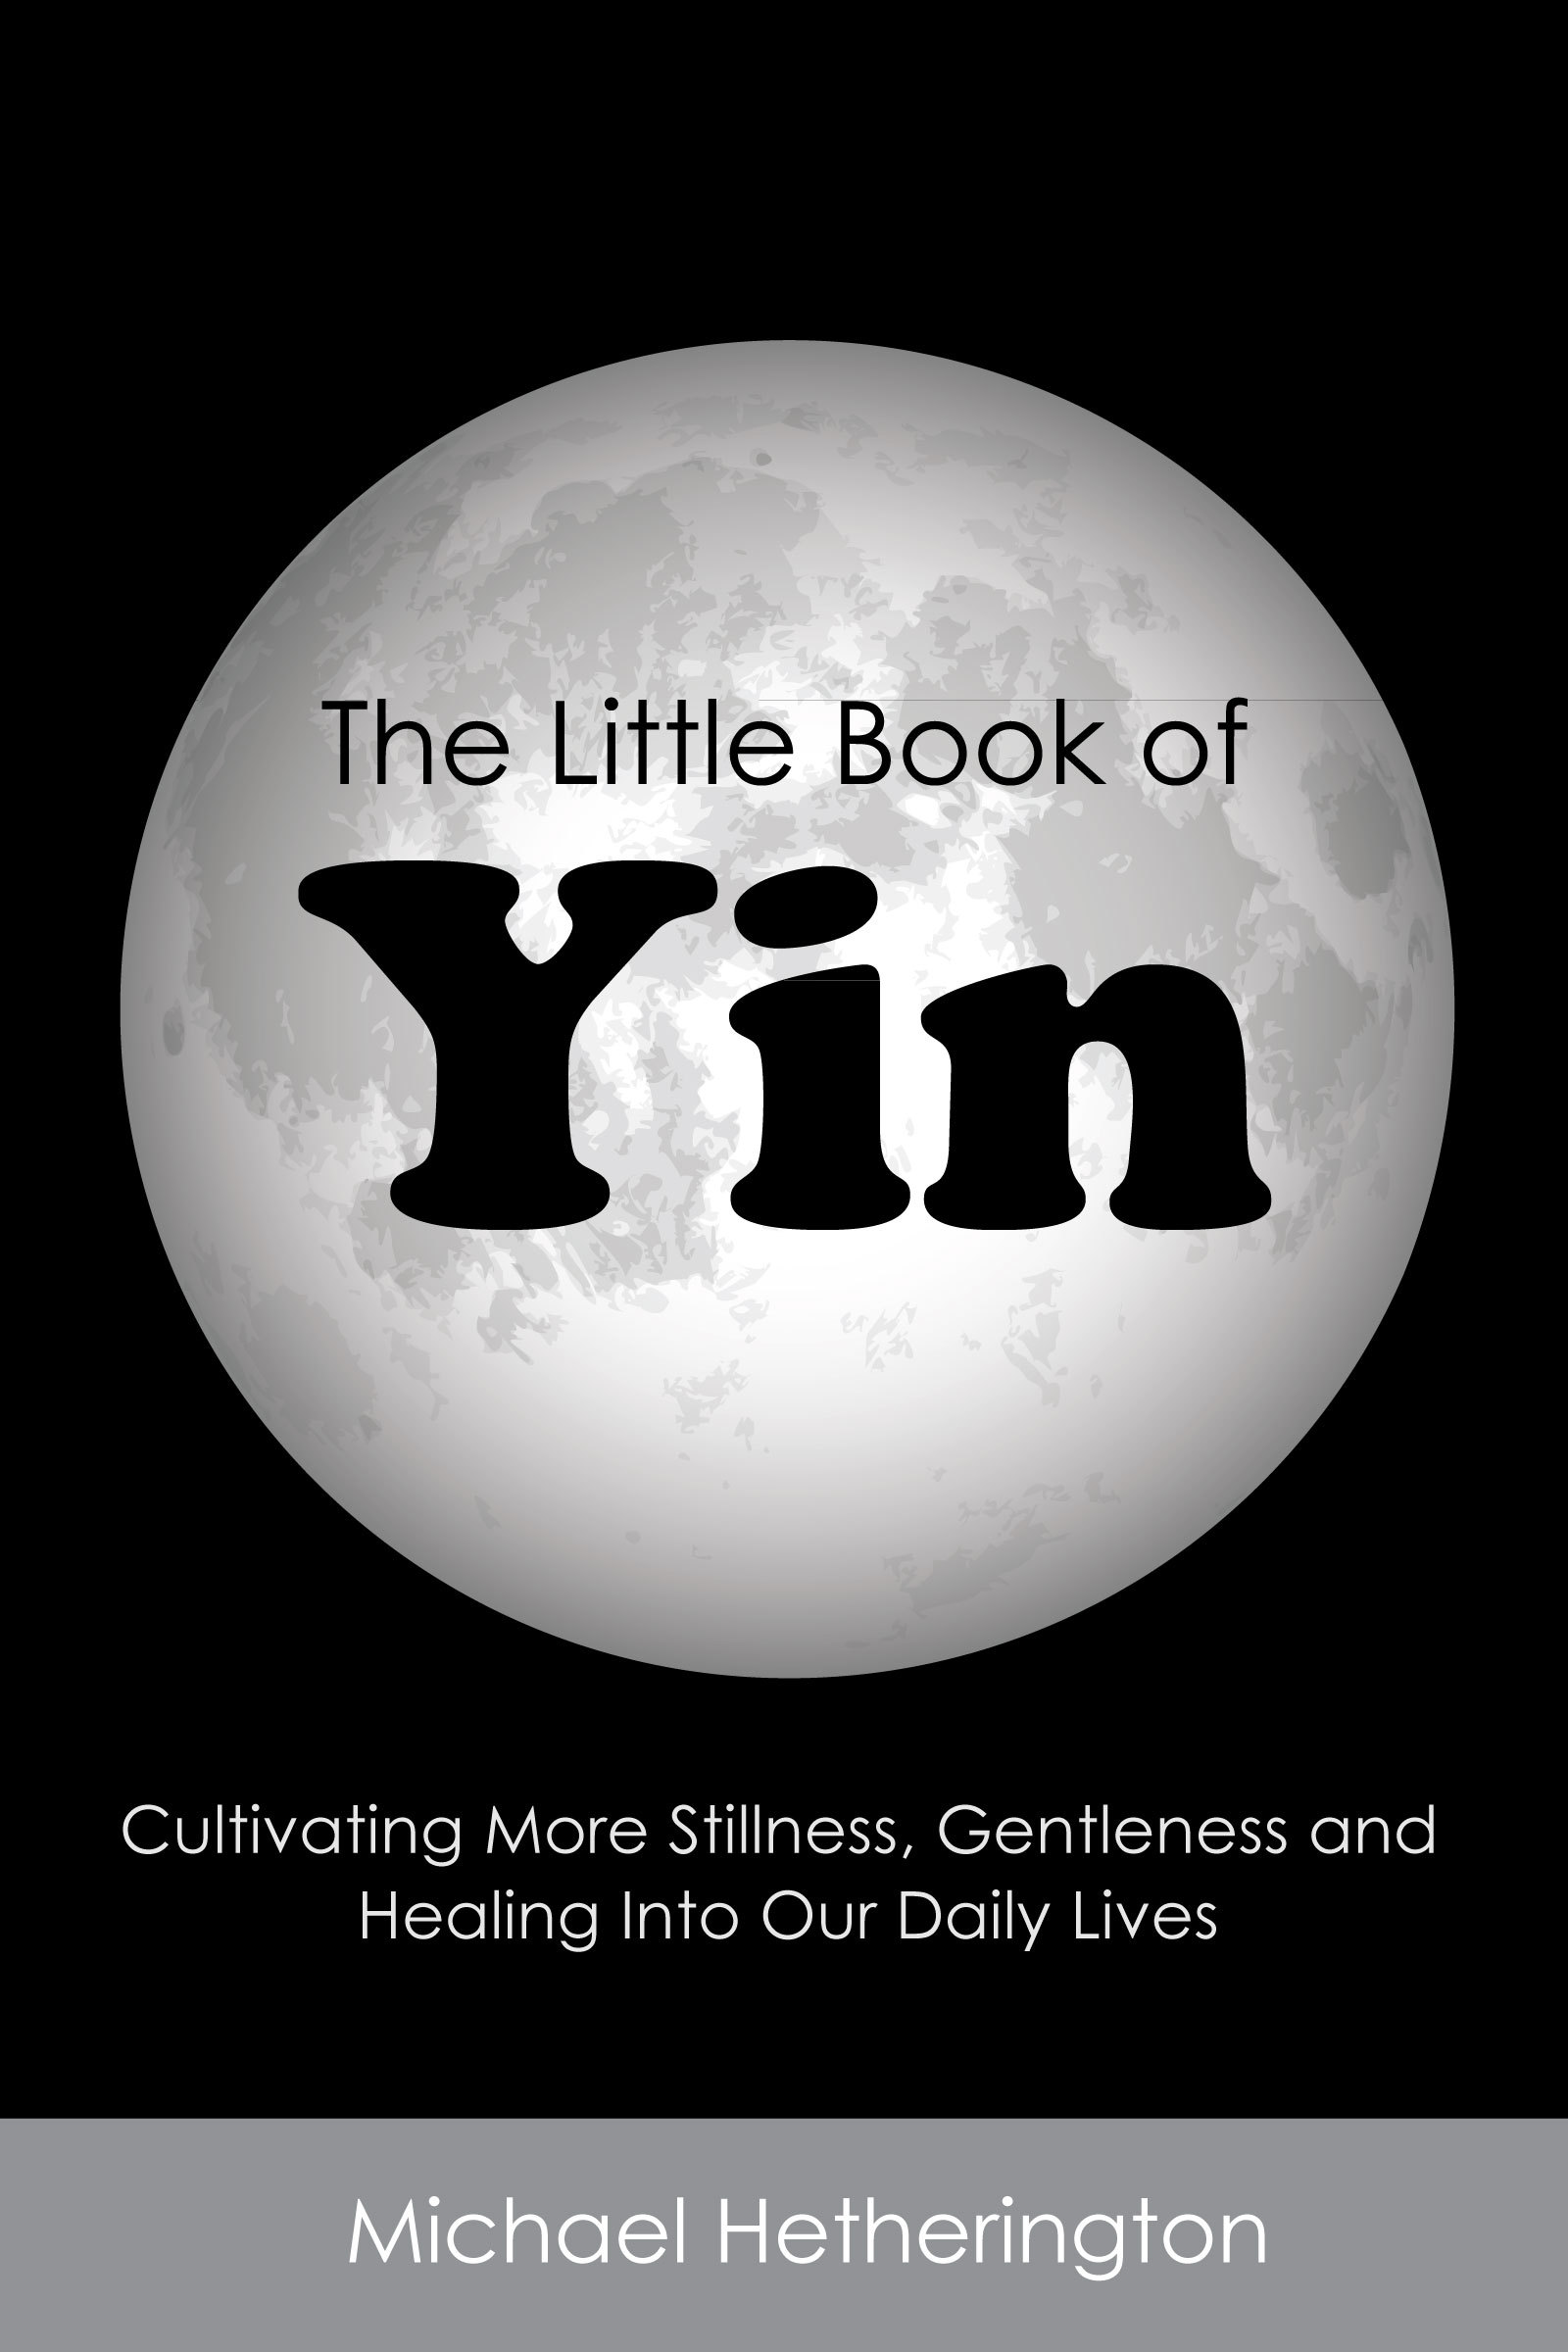 The Little Book of Yin: Cultivating More Stillness, Gentleness and Healing into Our Daily Lives